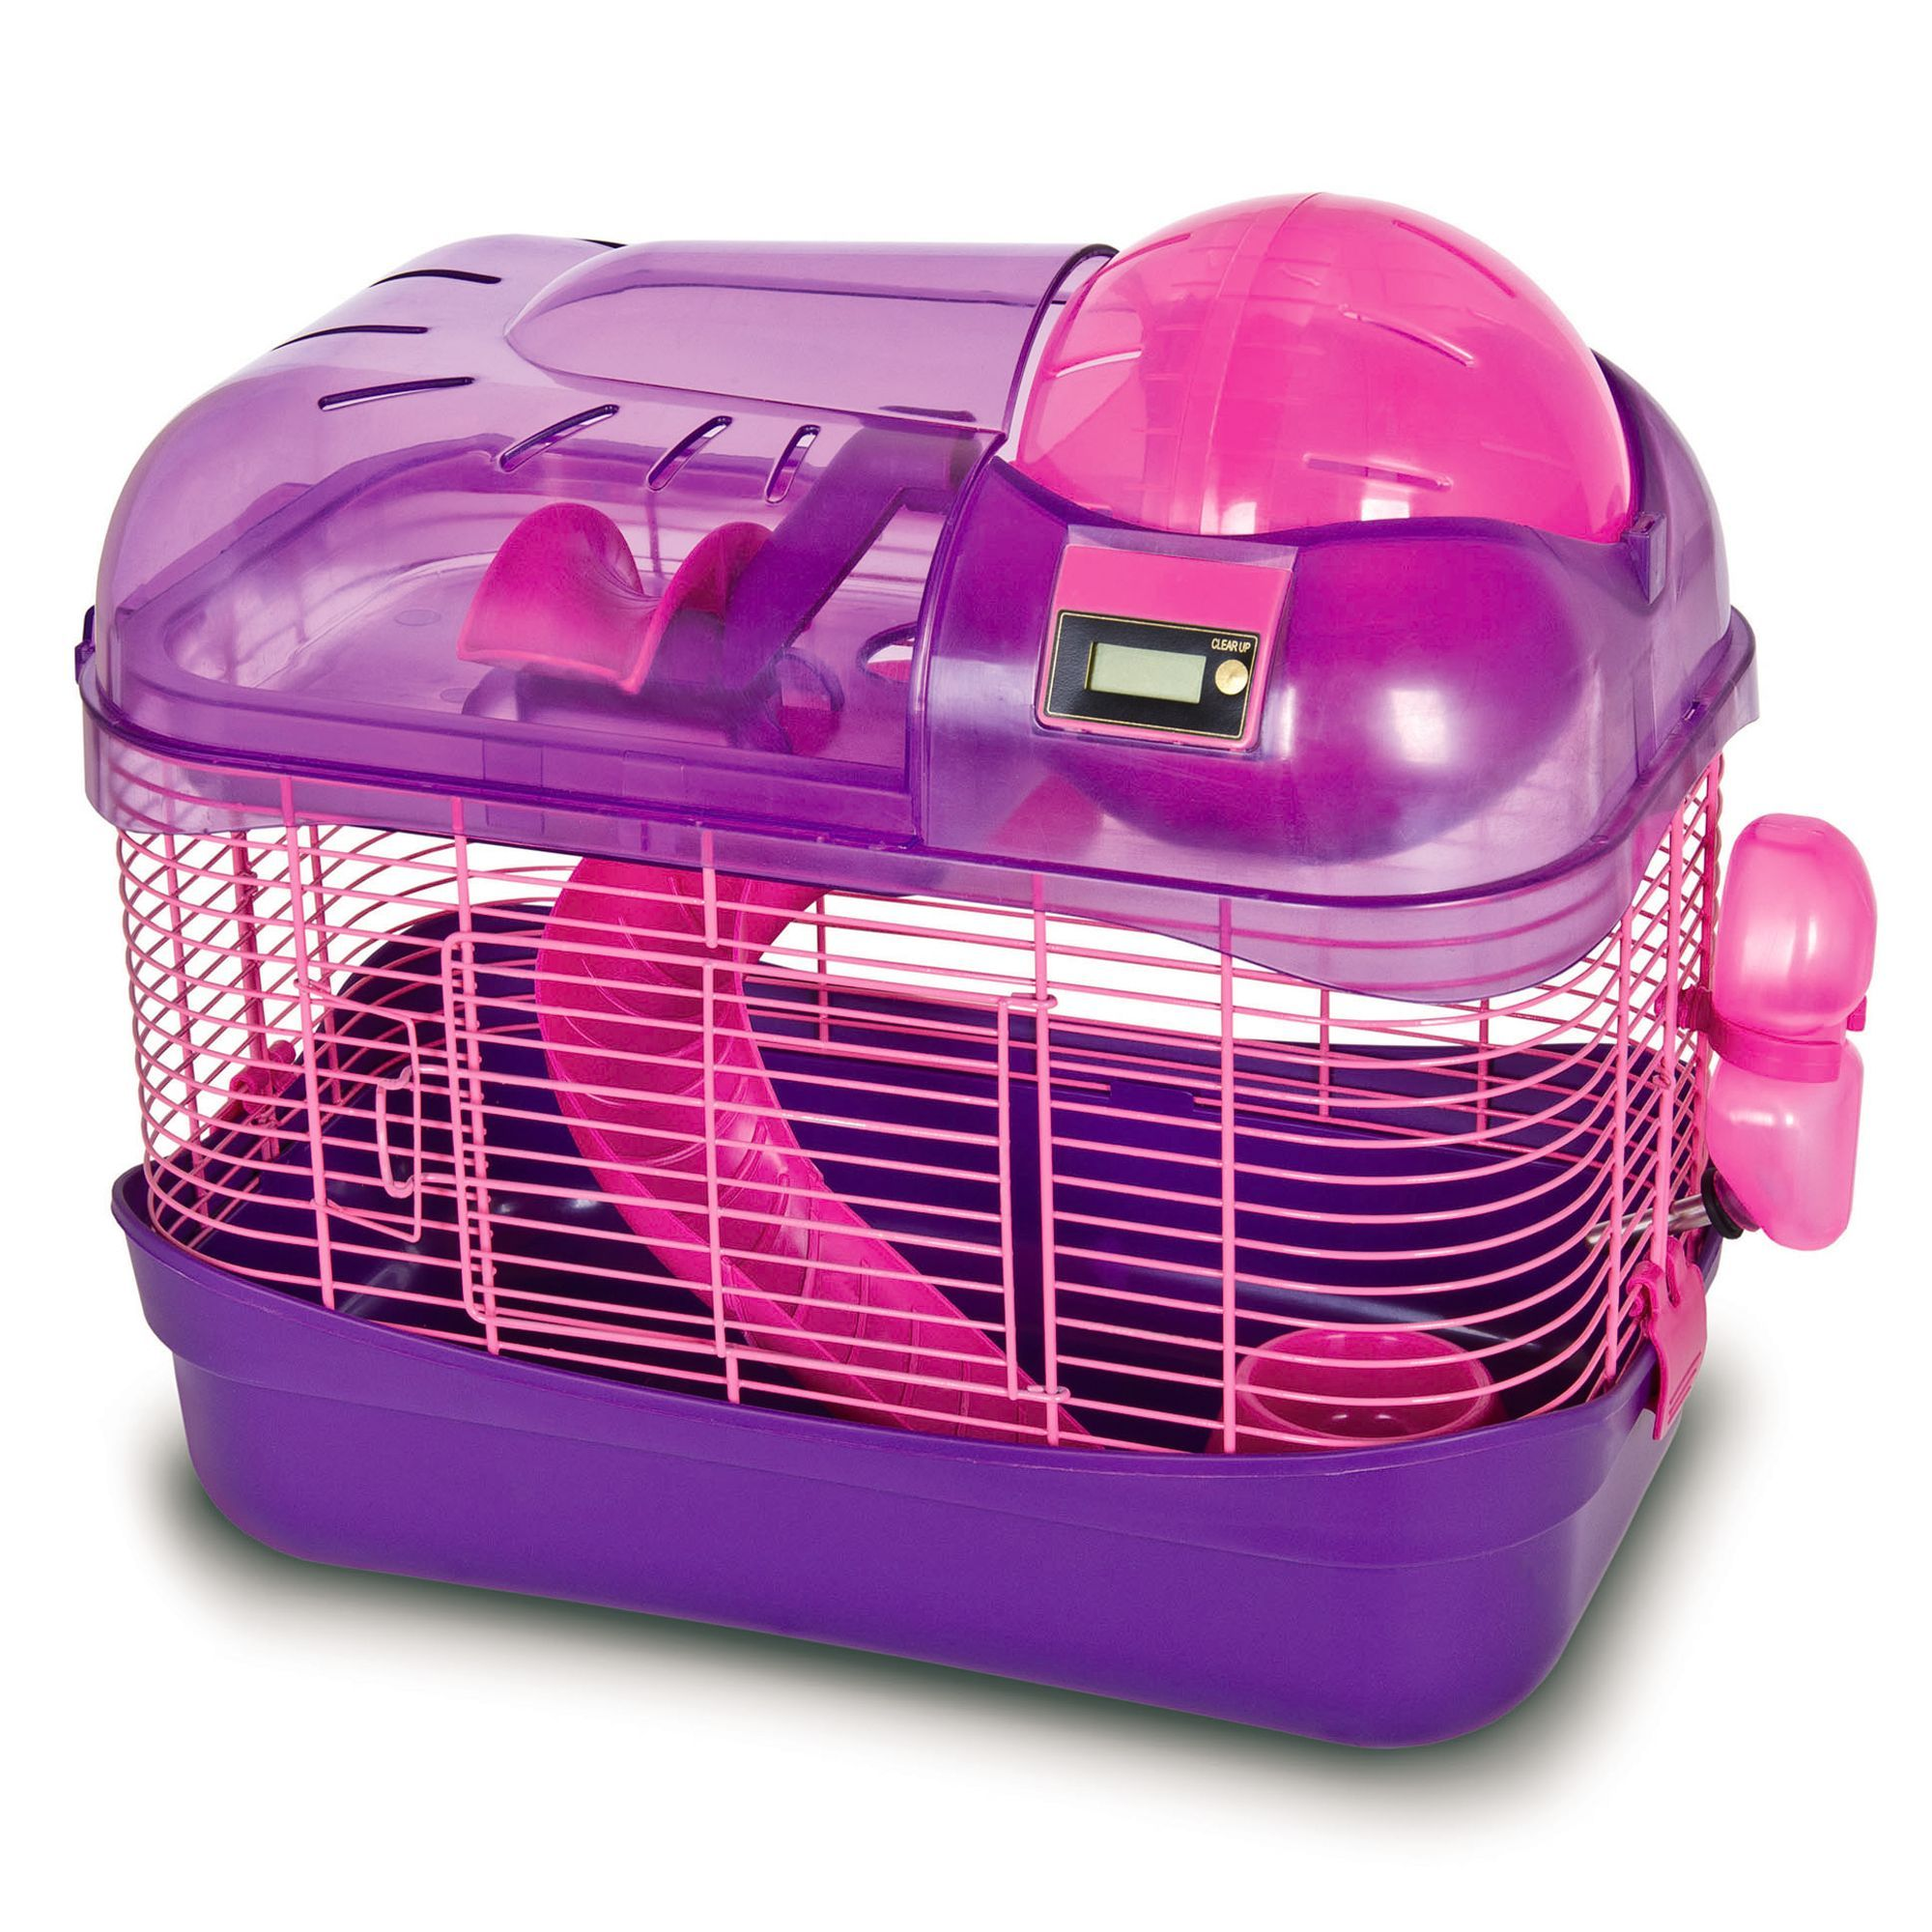 Ware Spin City Health Club Small Pet Habitat Purple Small Pets